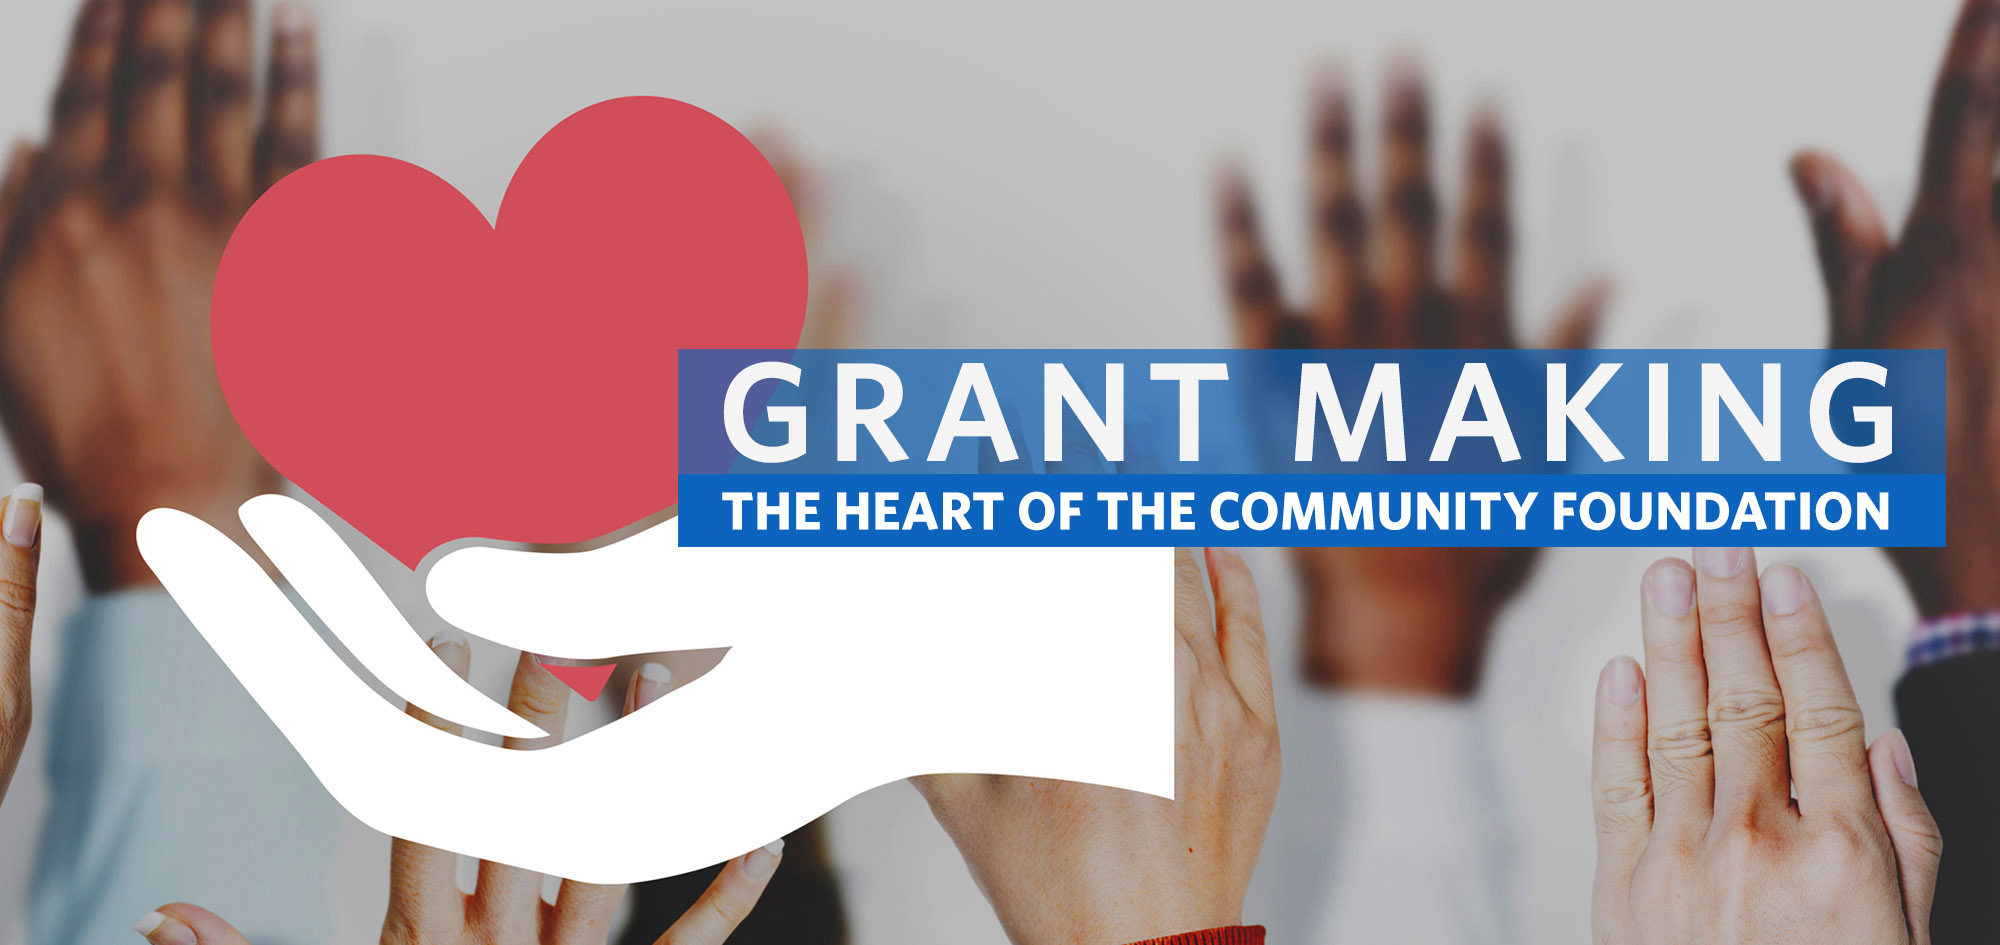 for grant seekers the community foundation of will county